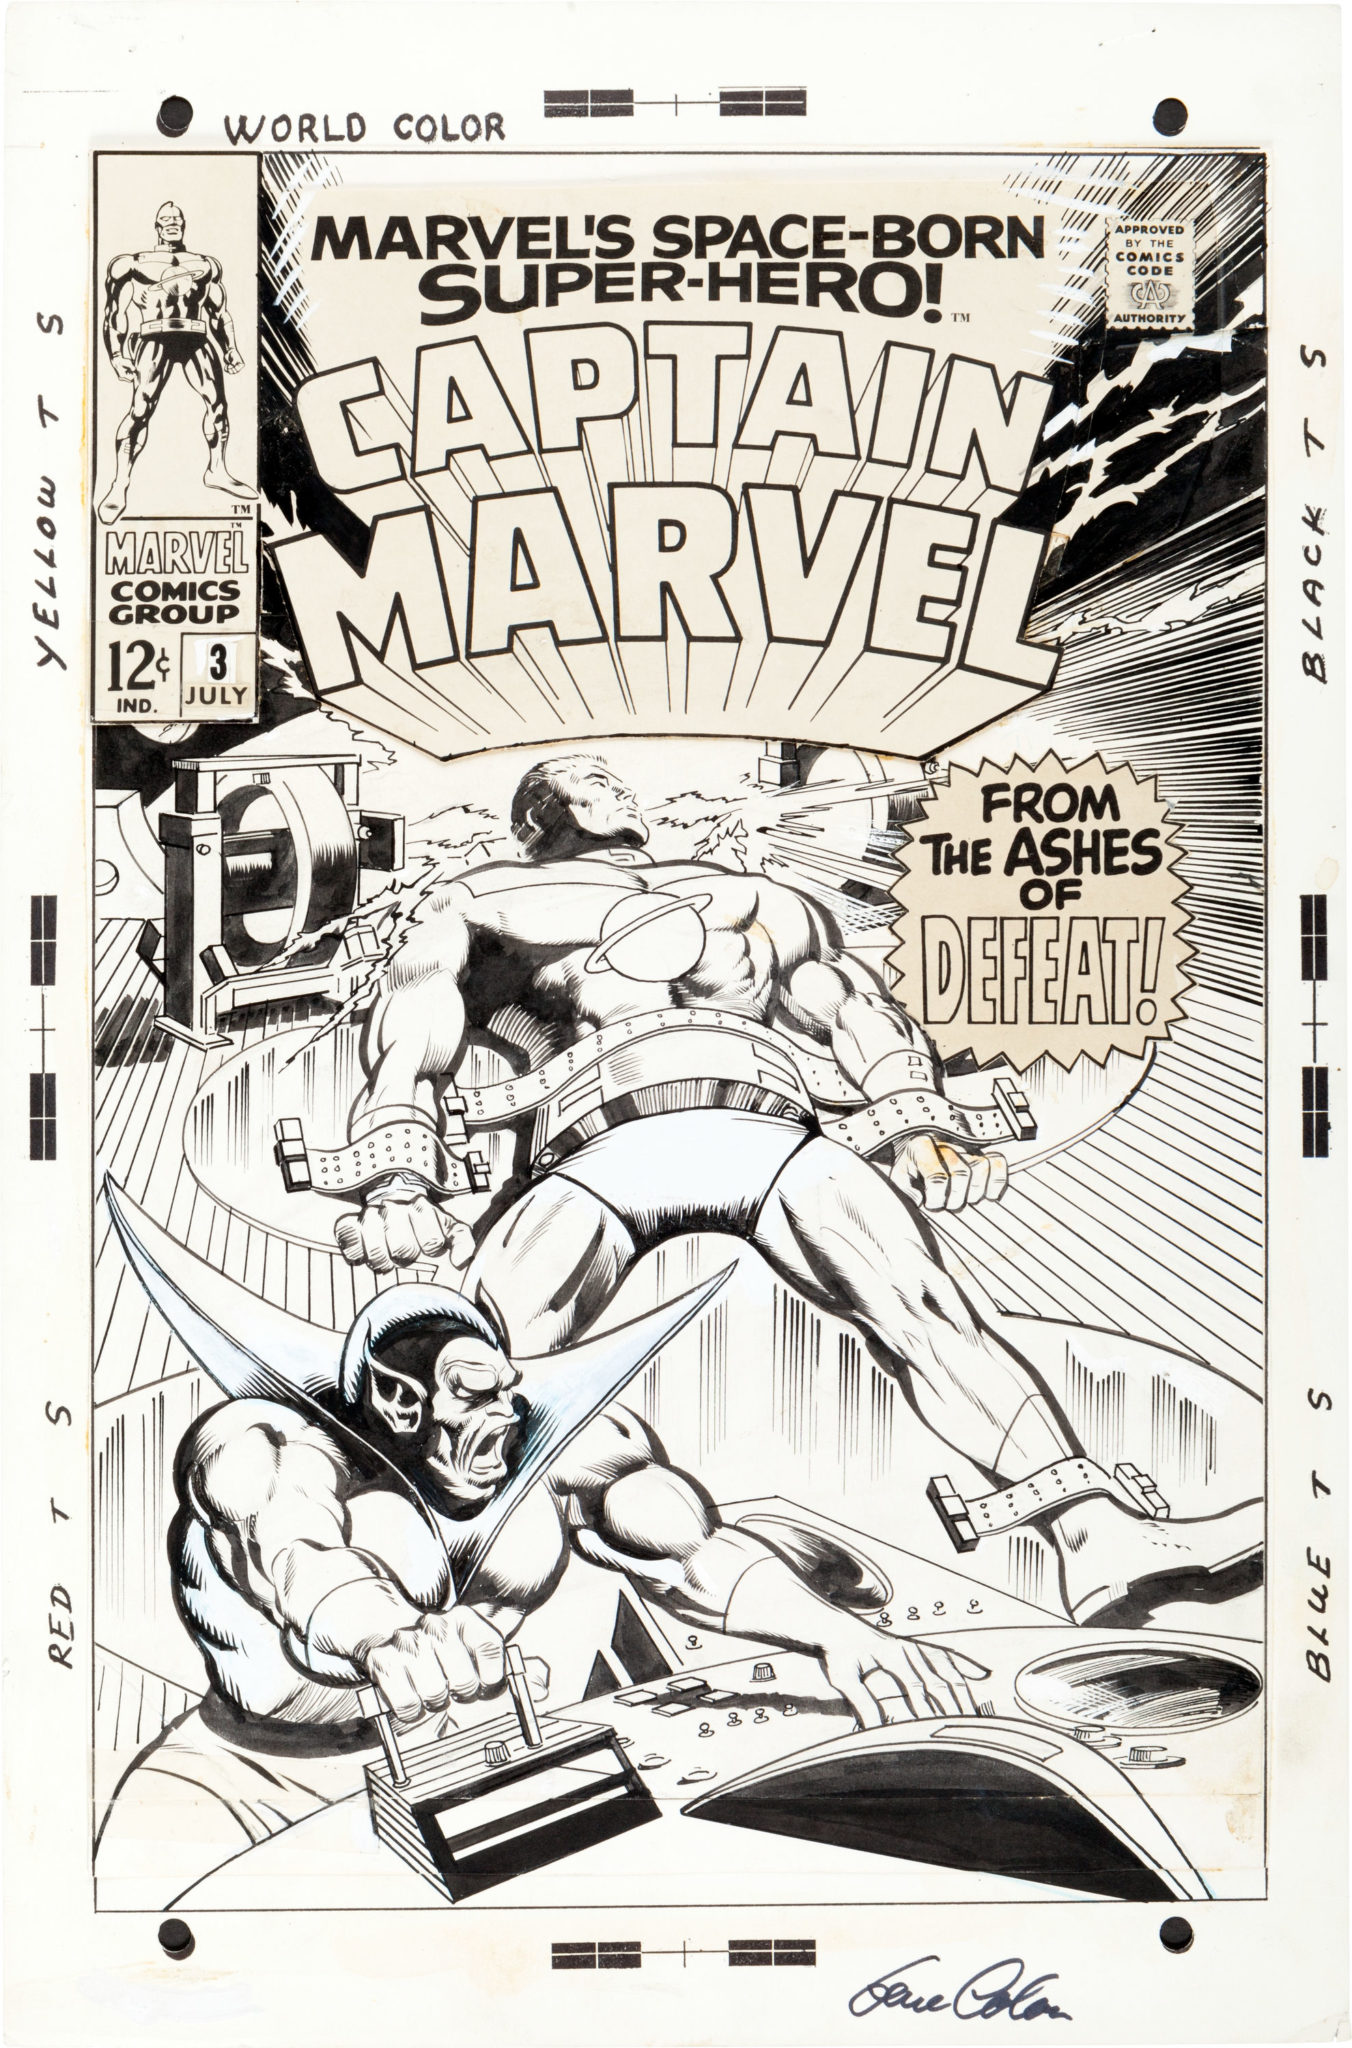 Heritage 2013 Feb 21-23 Art Auction: Silver Age